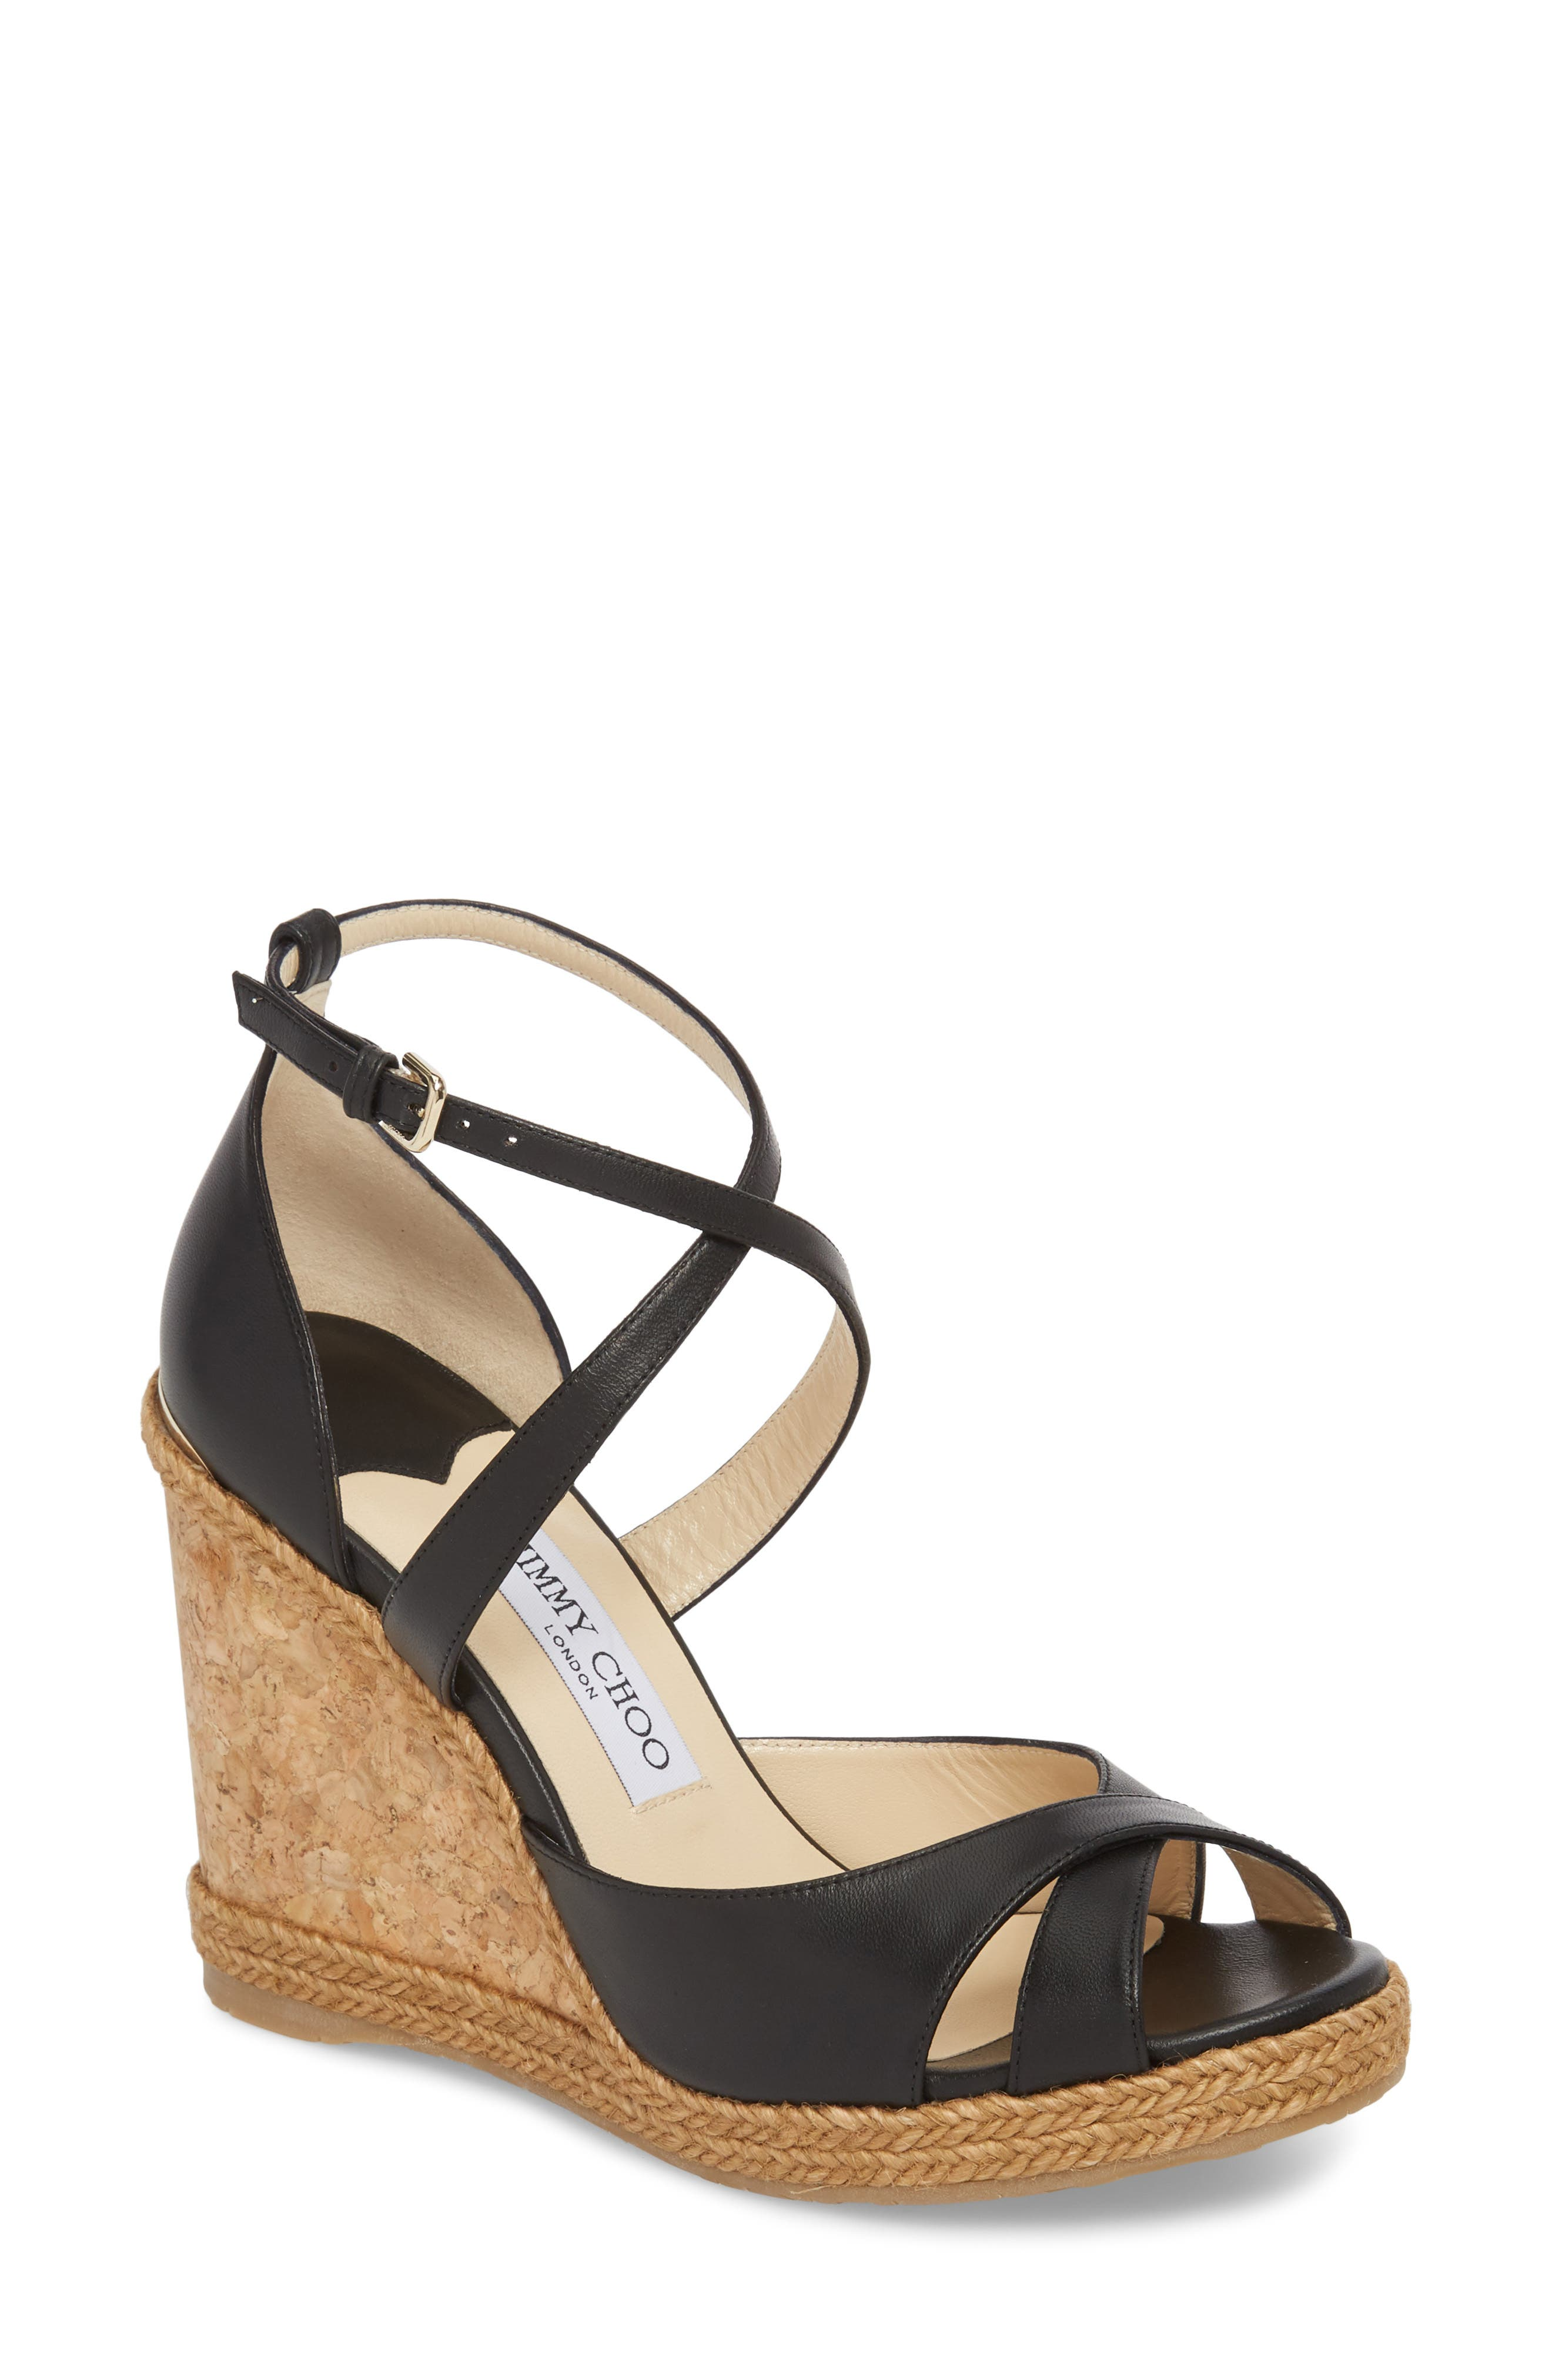 JIMMY CHOO Alanah Espadrille Wedge Sandal, Main, color, BLACK